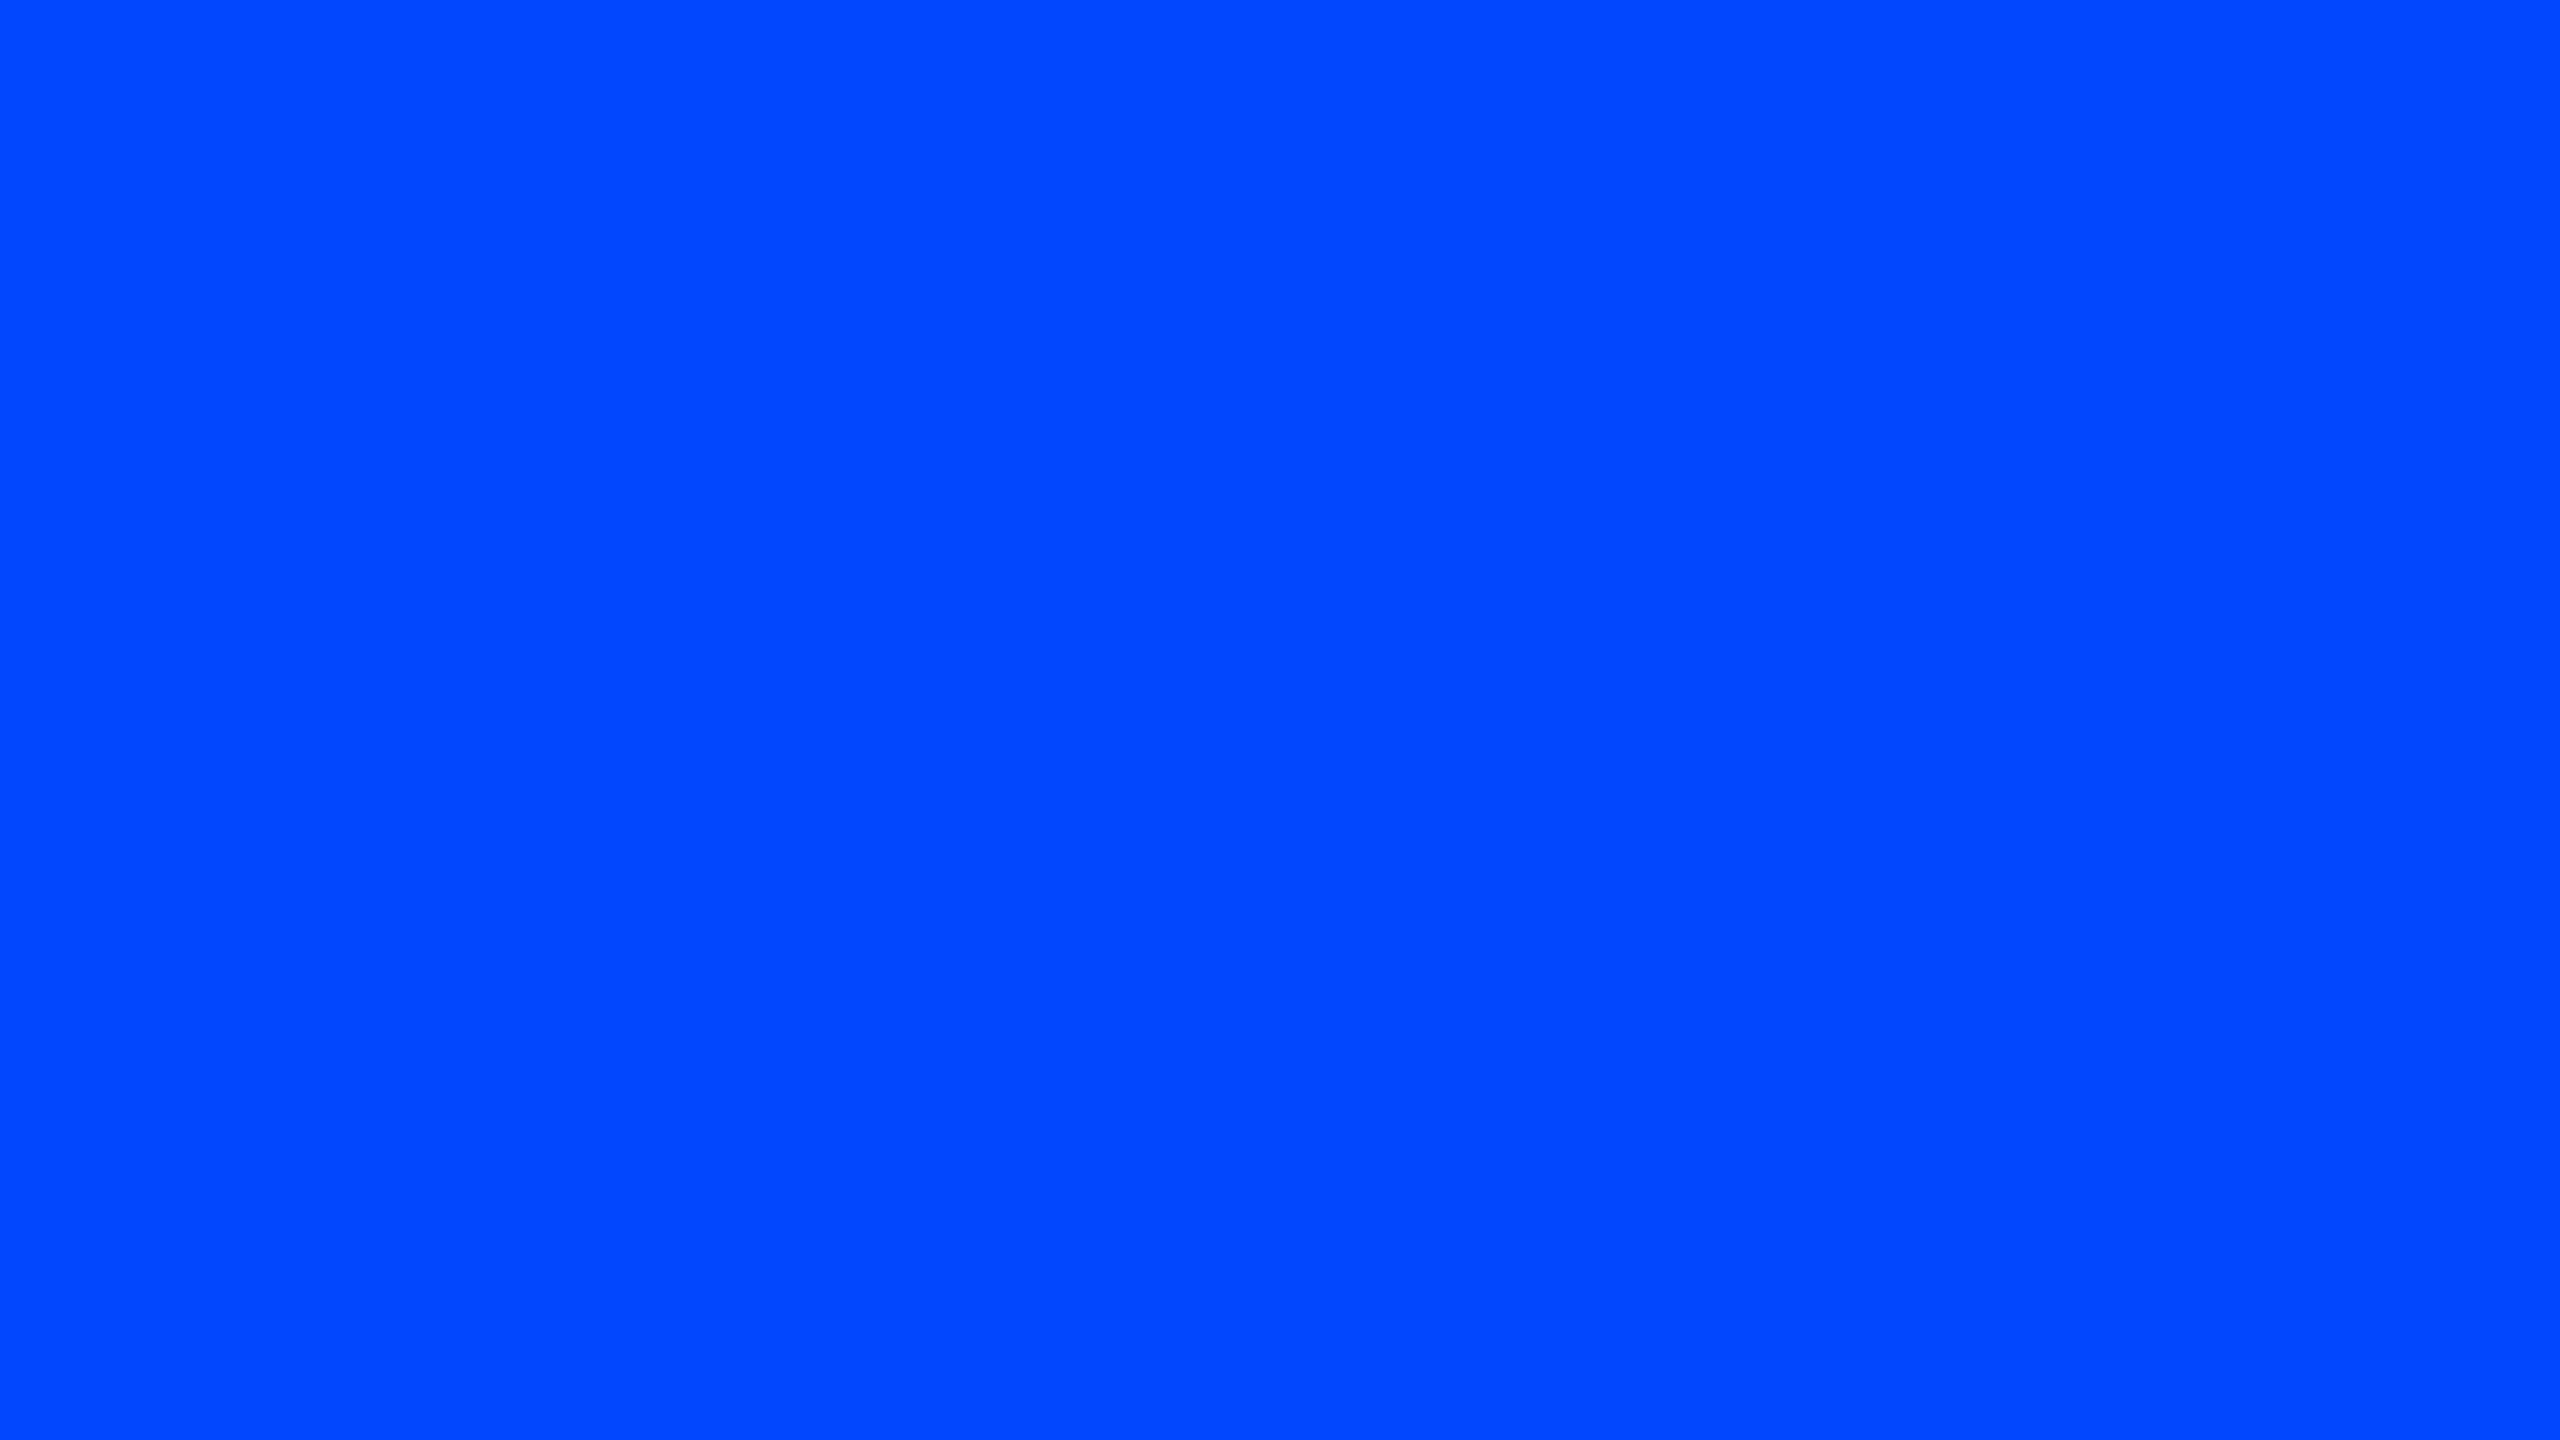 2560x1440 blue ryb solid color background